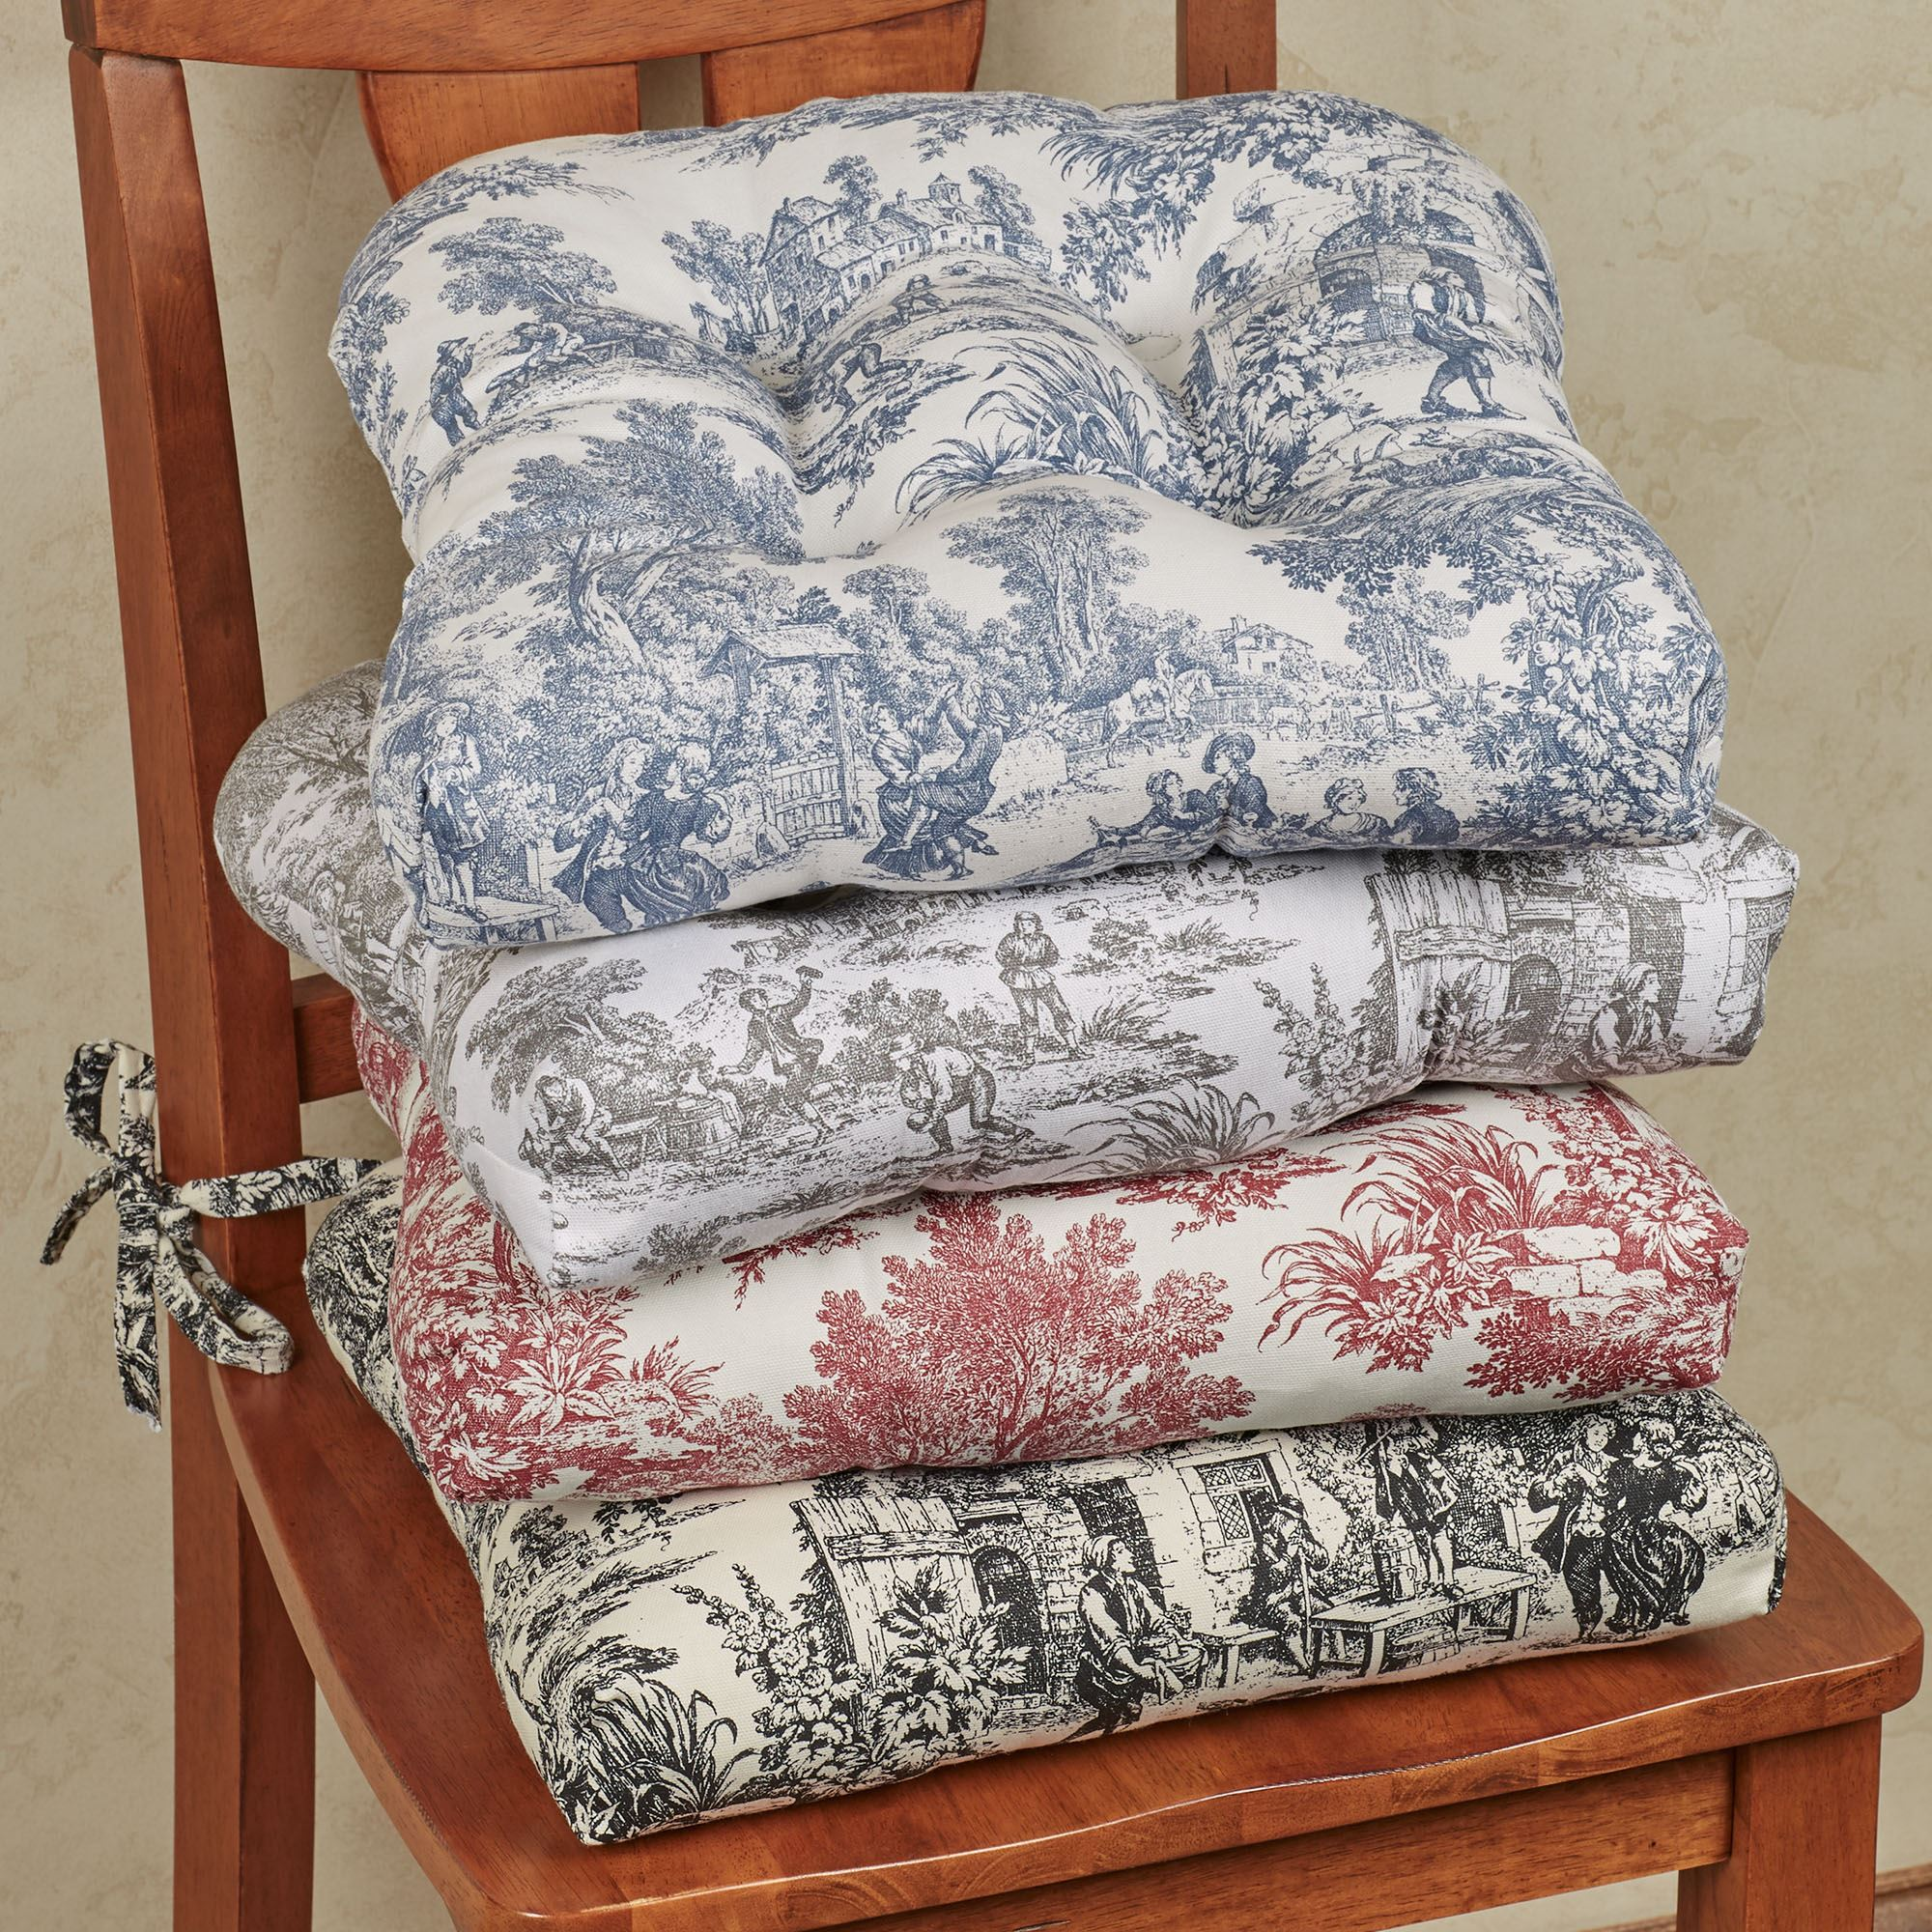 Merveilleux Victoria Park Chair Cushion 15x14. Touch To Zoom